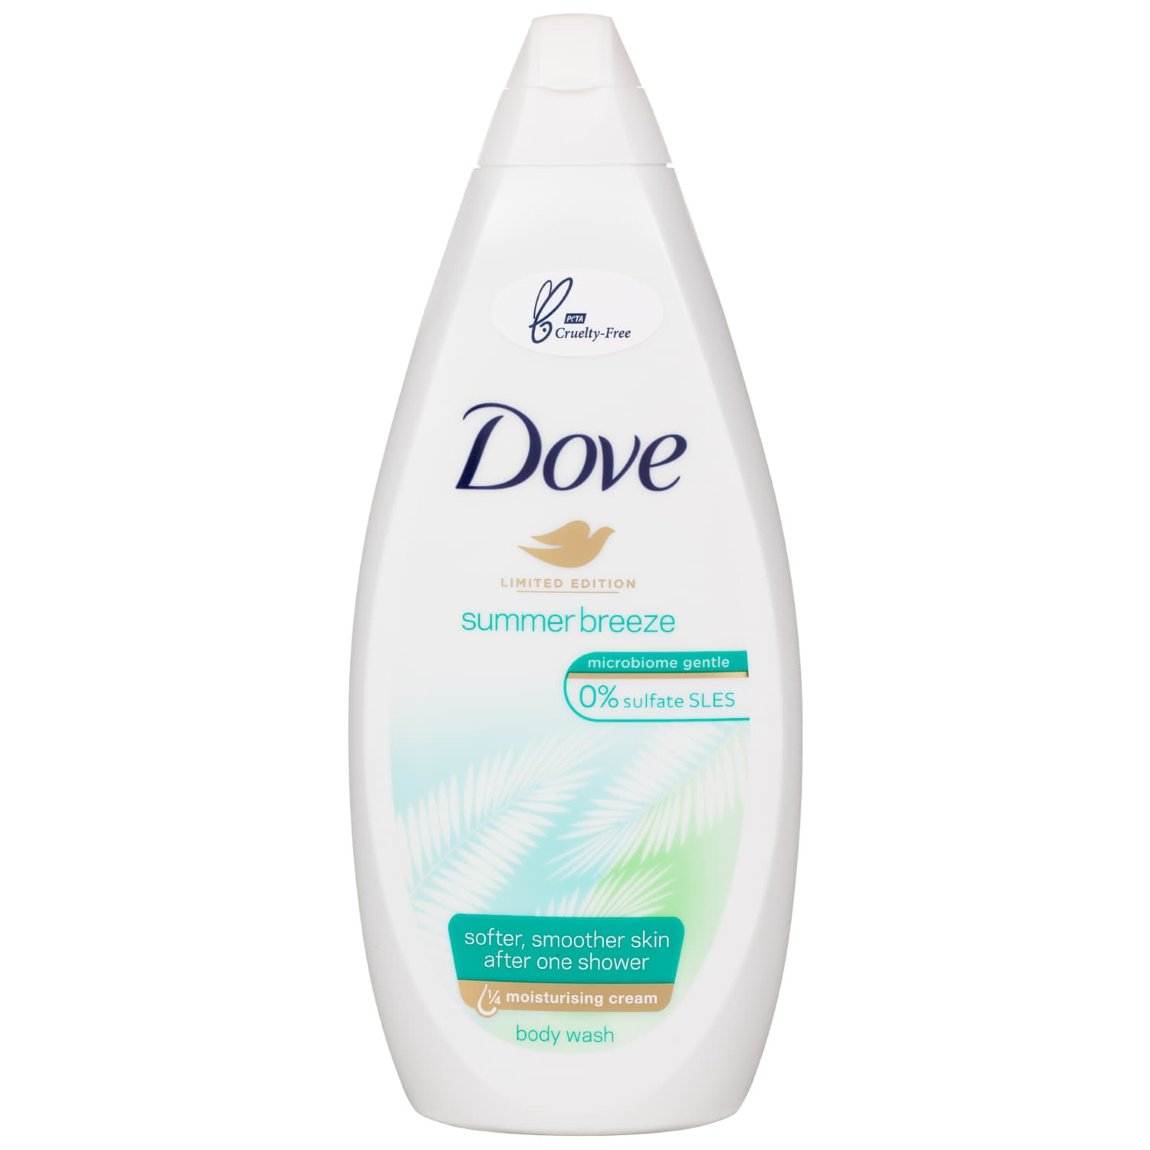 Dove Body Wash Summer Breeze 720ml